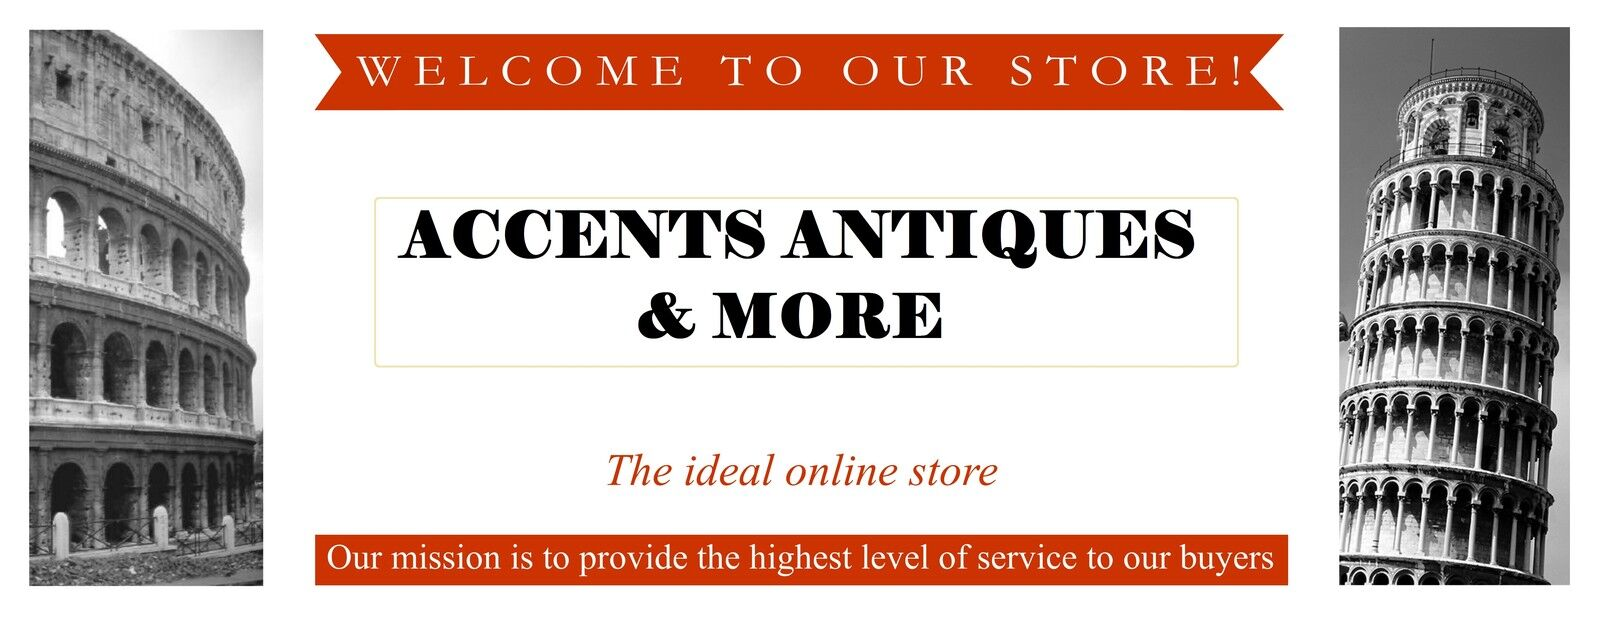 Accents Antiques & More